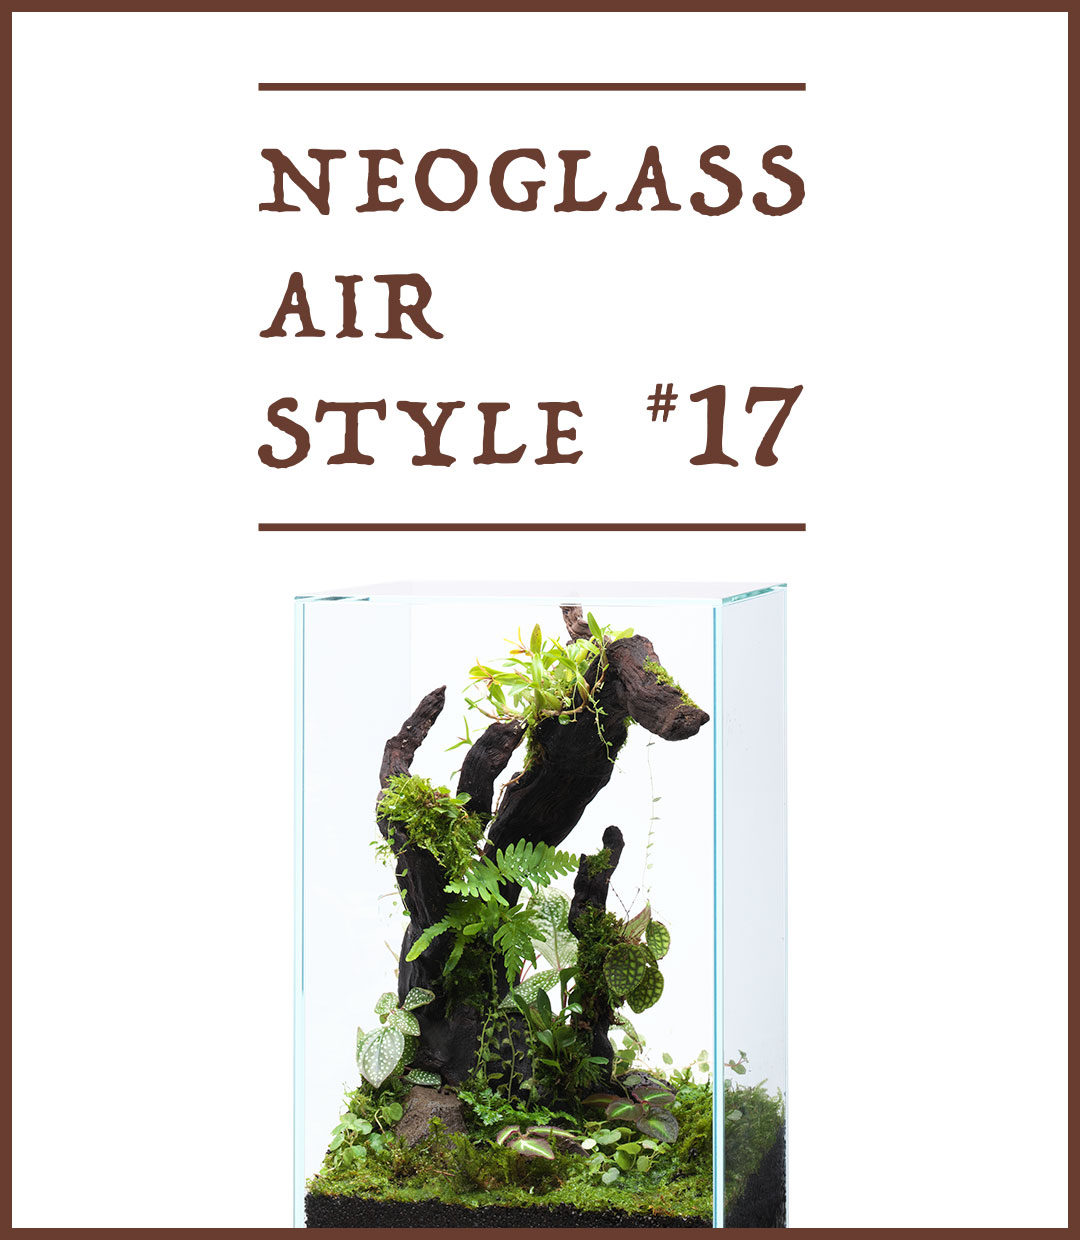 NEO GLASS AIR STYLE 'Enjoy the uplifting energy created by jungle plants'